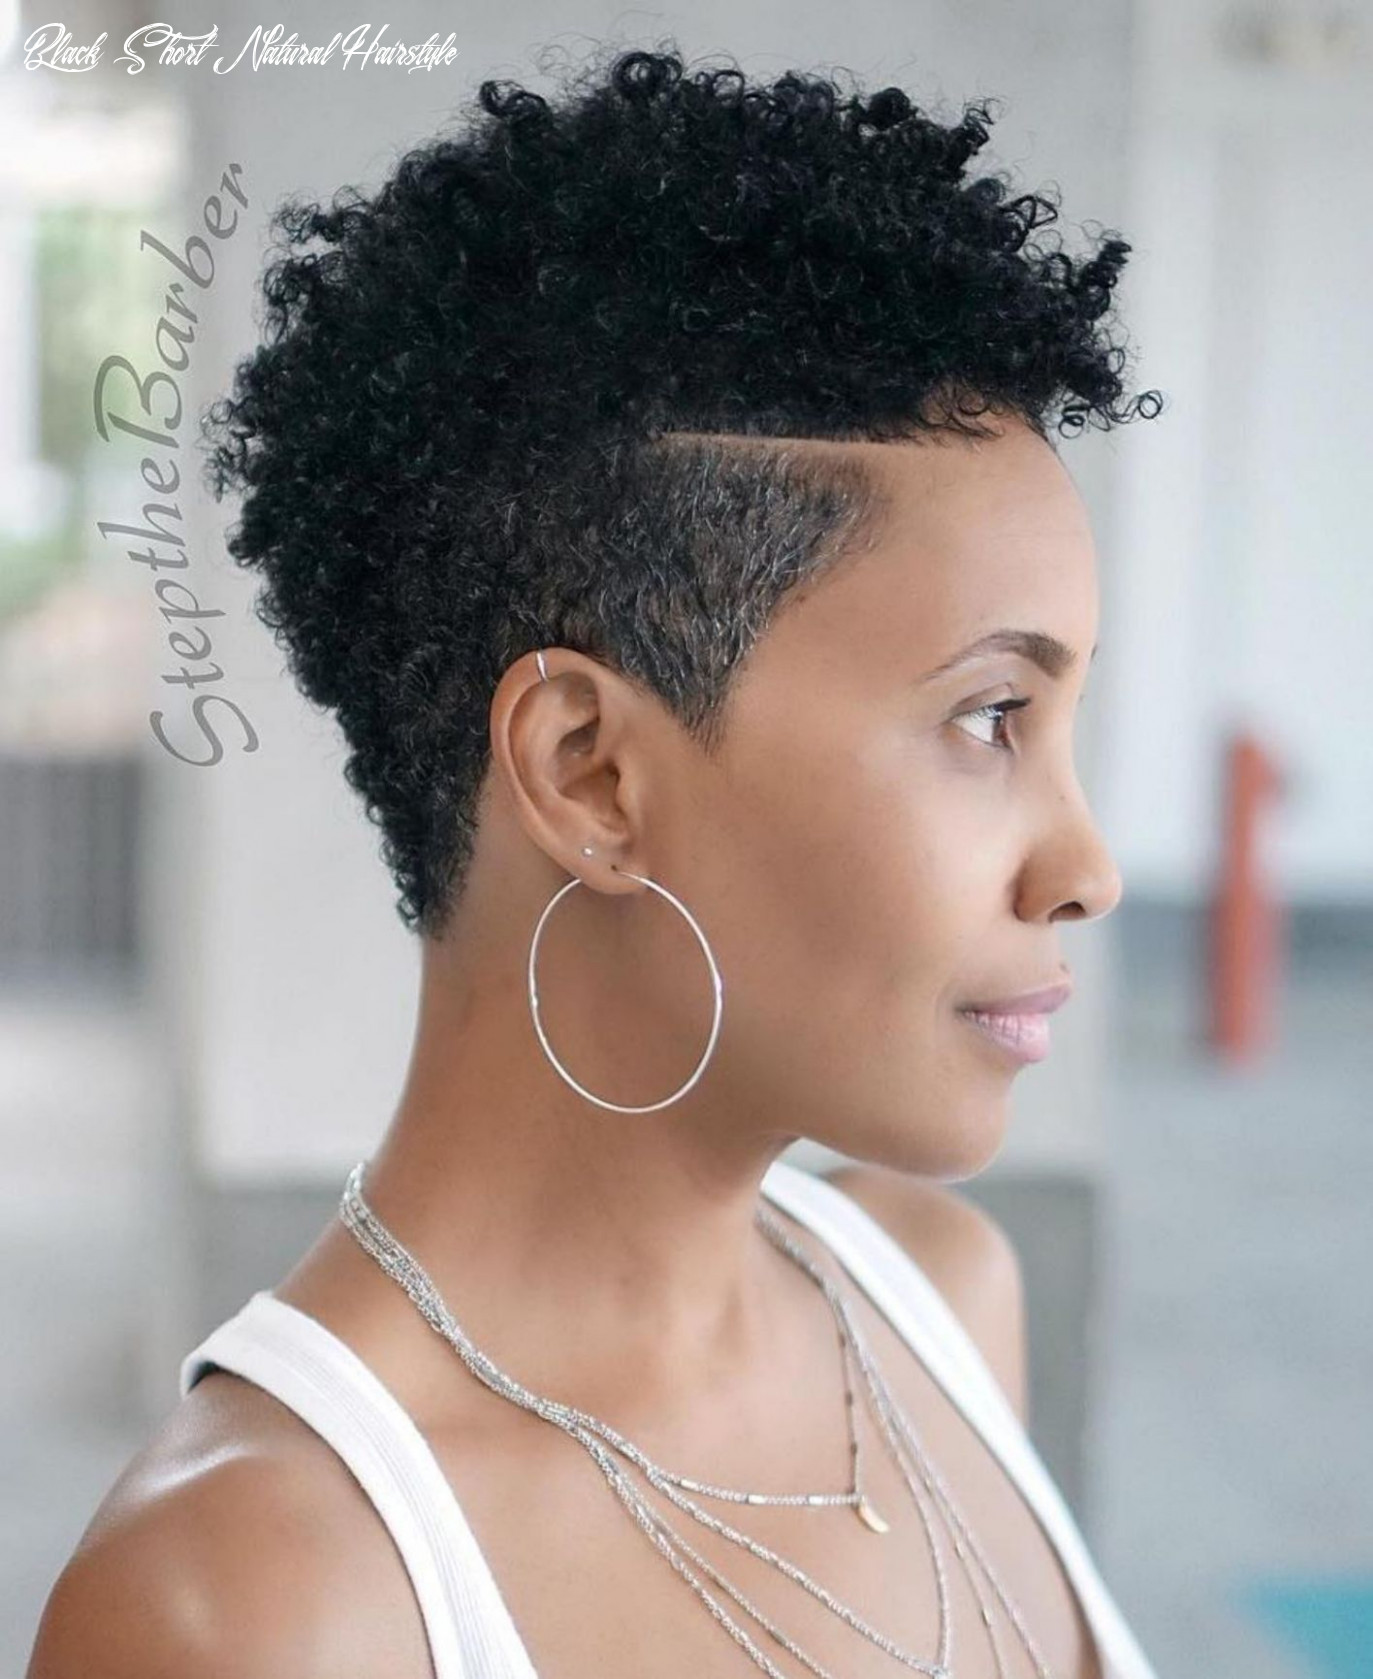 8 great short hairstyles for black women | natural hair styles